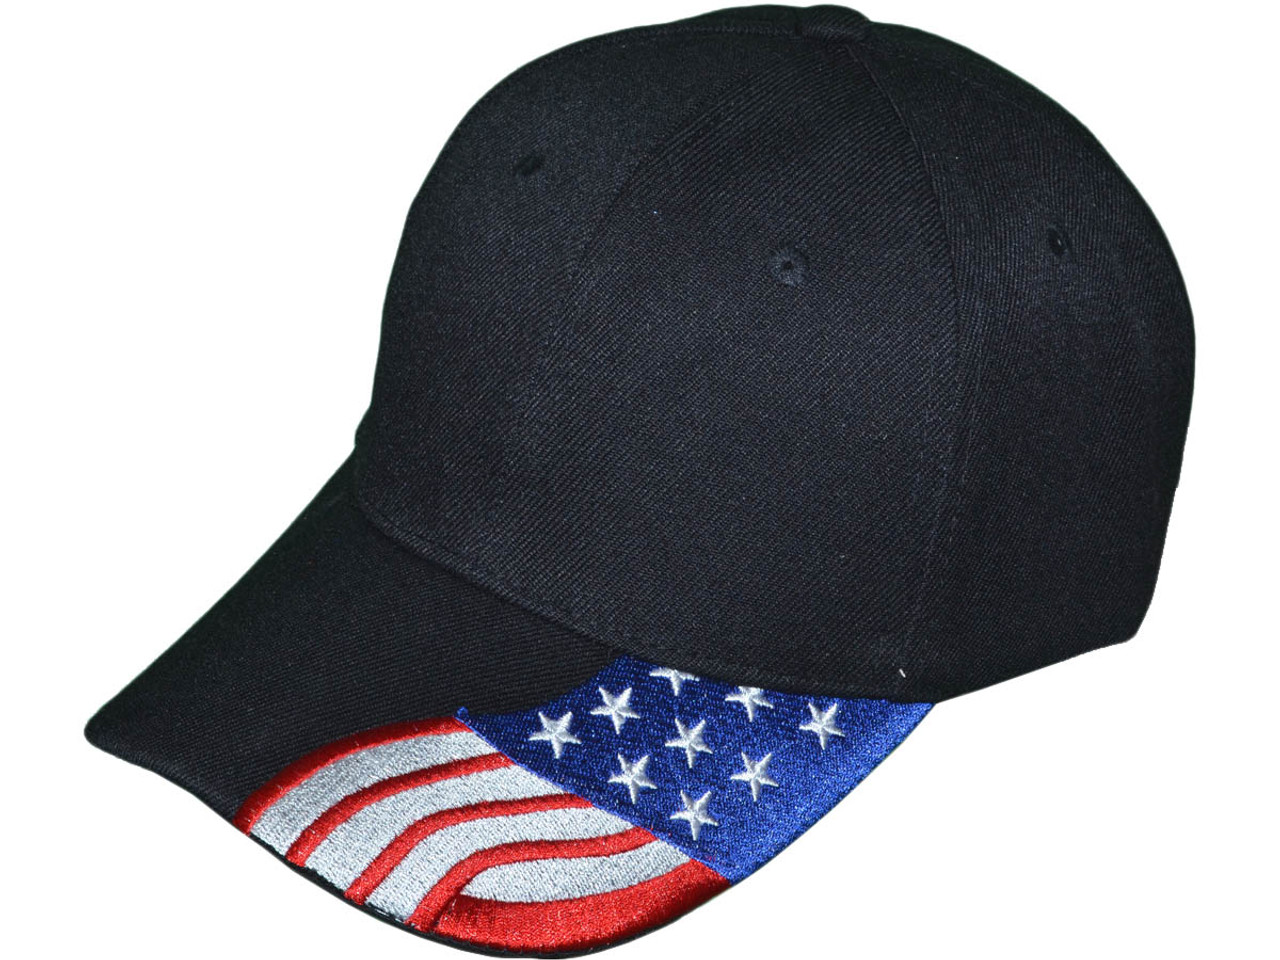 Patriotic Baseball Hats - USA Flag Embroidered on Bill BK Caps (Black) -  5211 24a1b0d4472